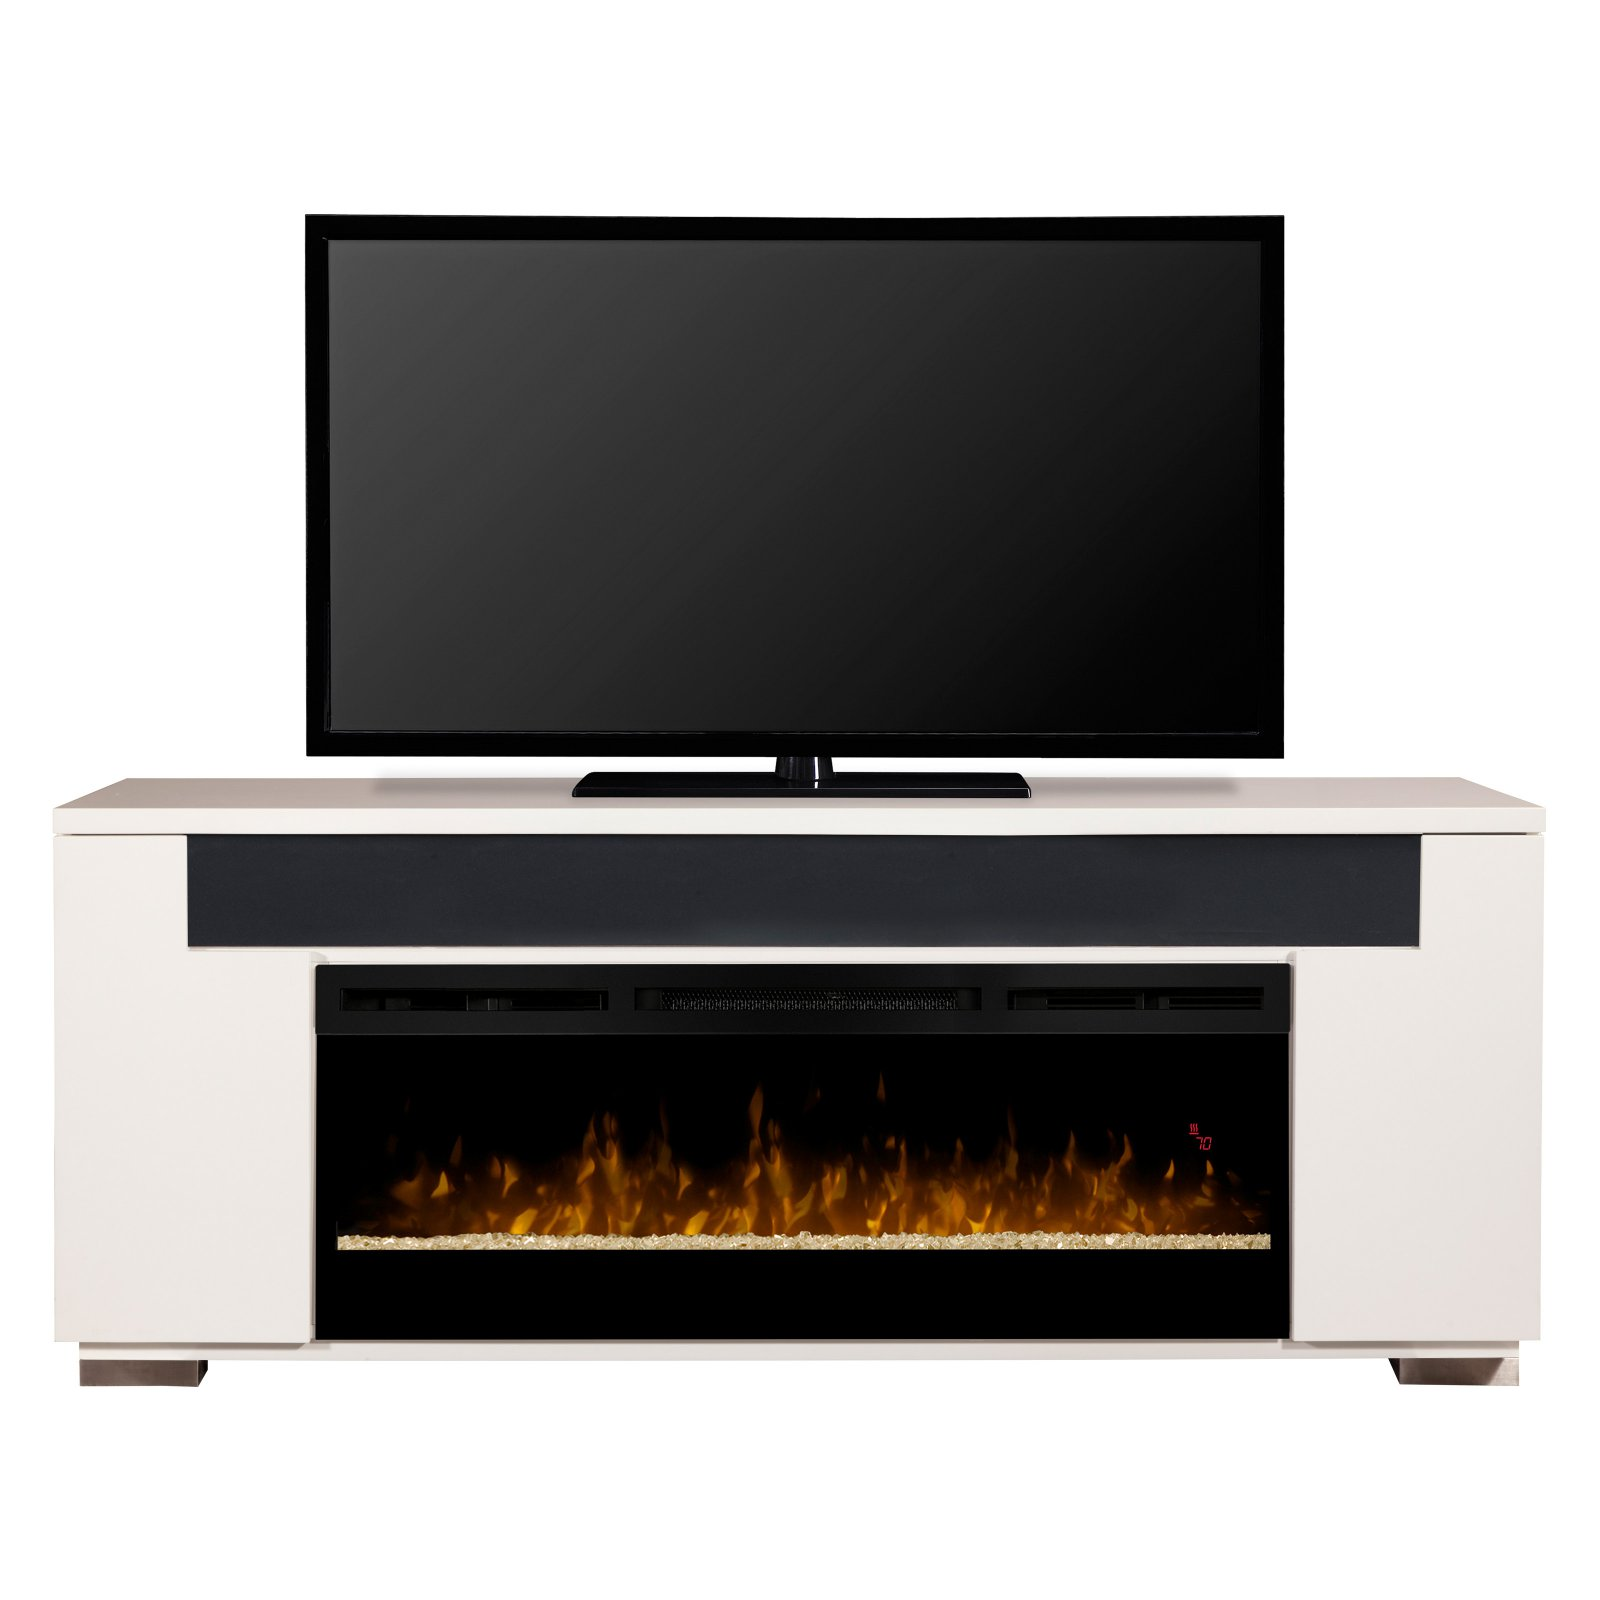 Dimplex haley media console electric fireplace with - Going to bed with embers in fireplace ...